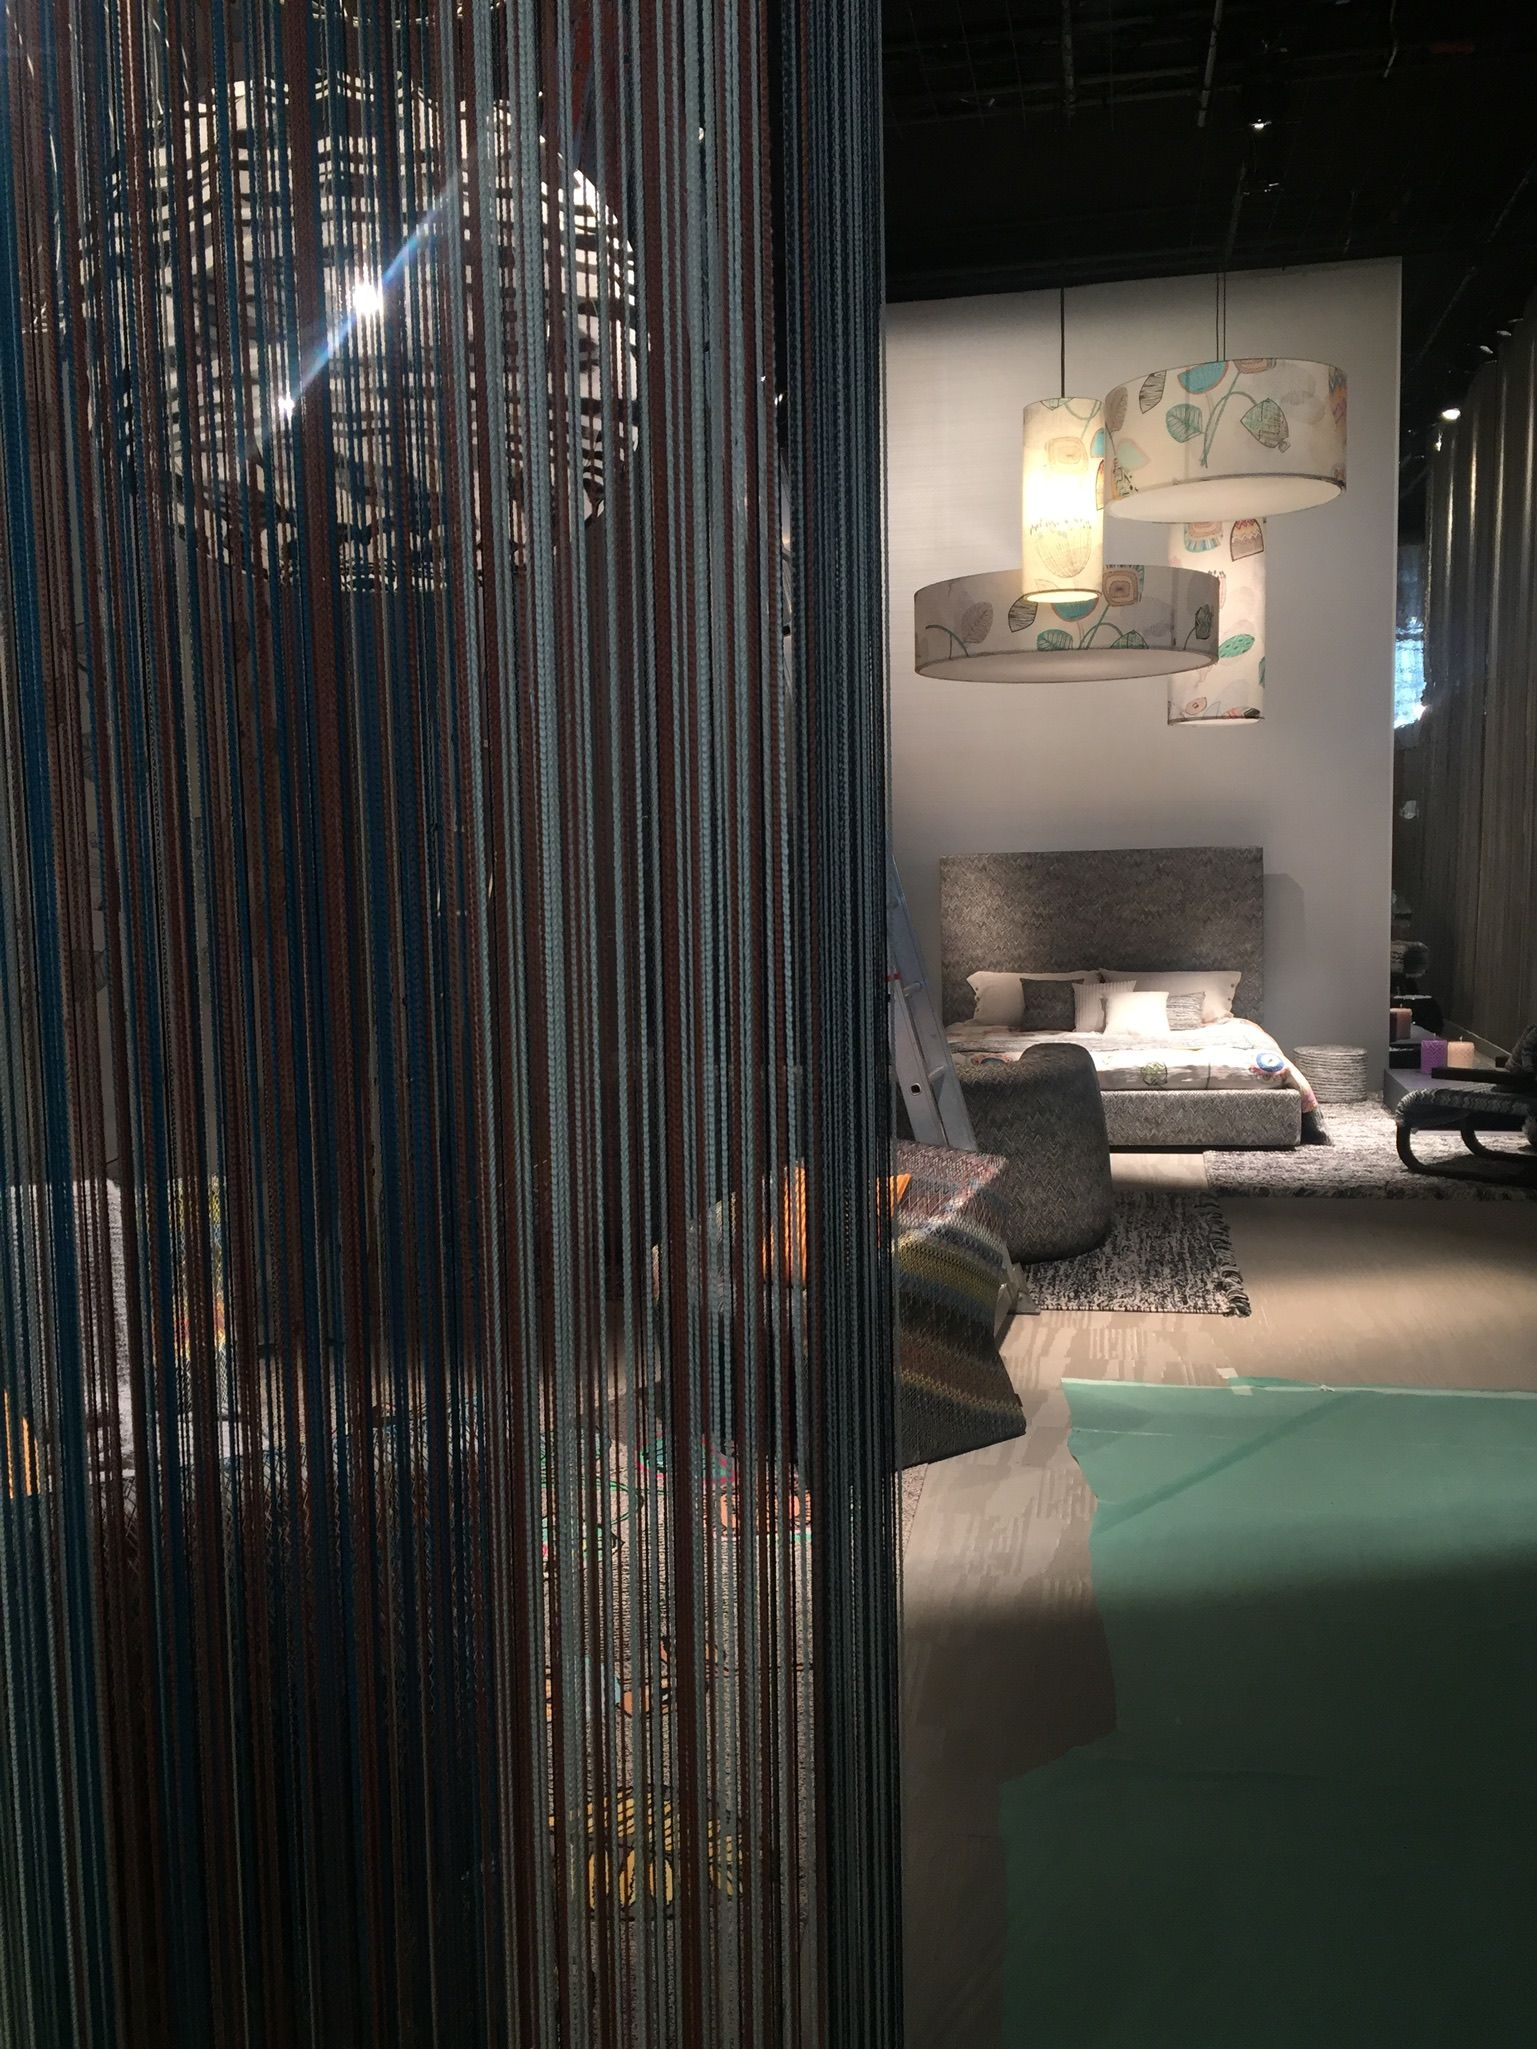 Maison Et Objet January Is Over But We Are Already Preparing News